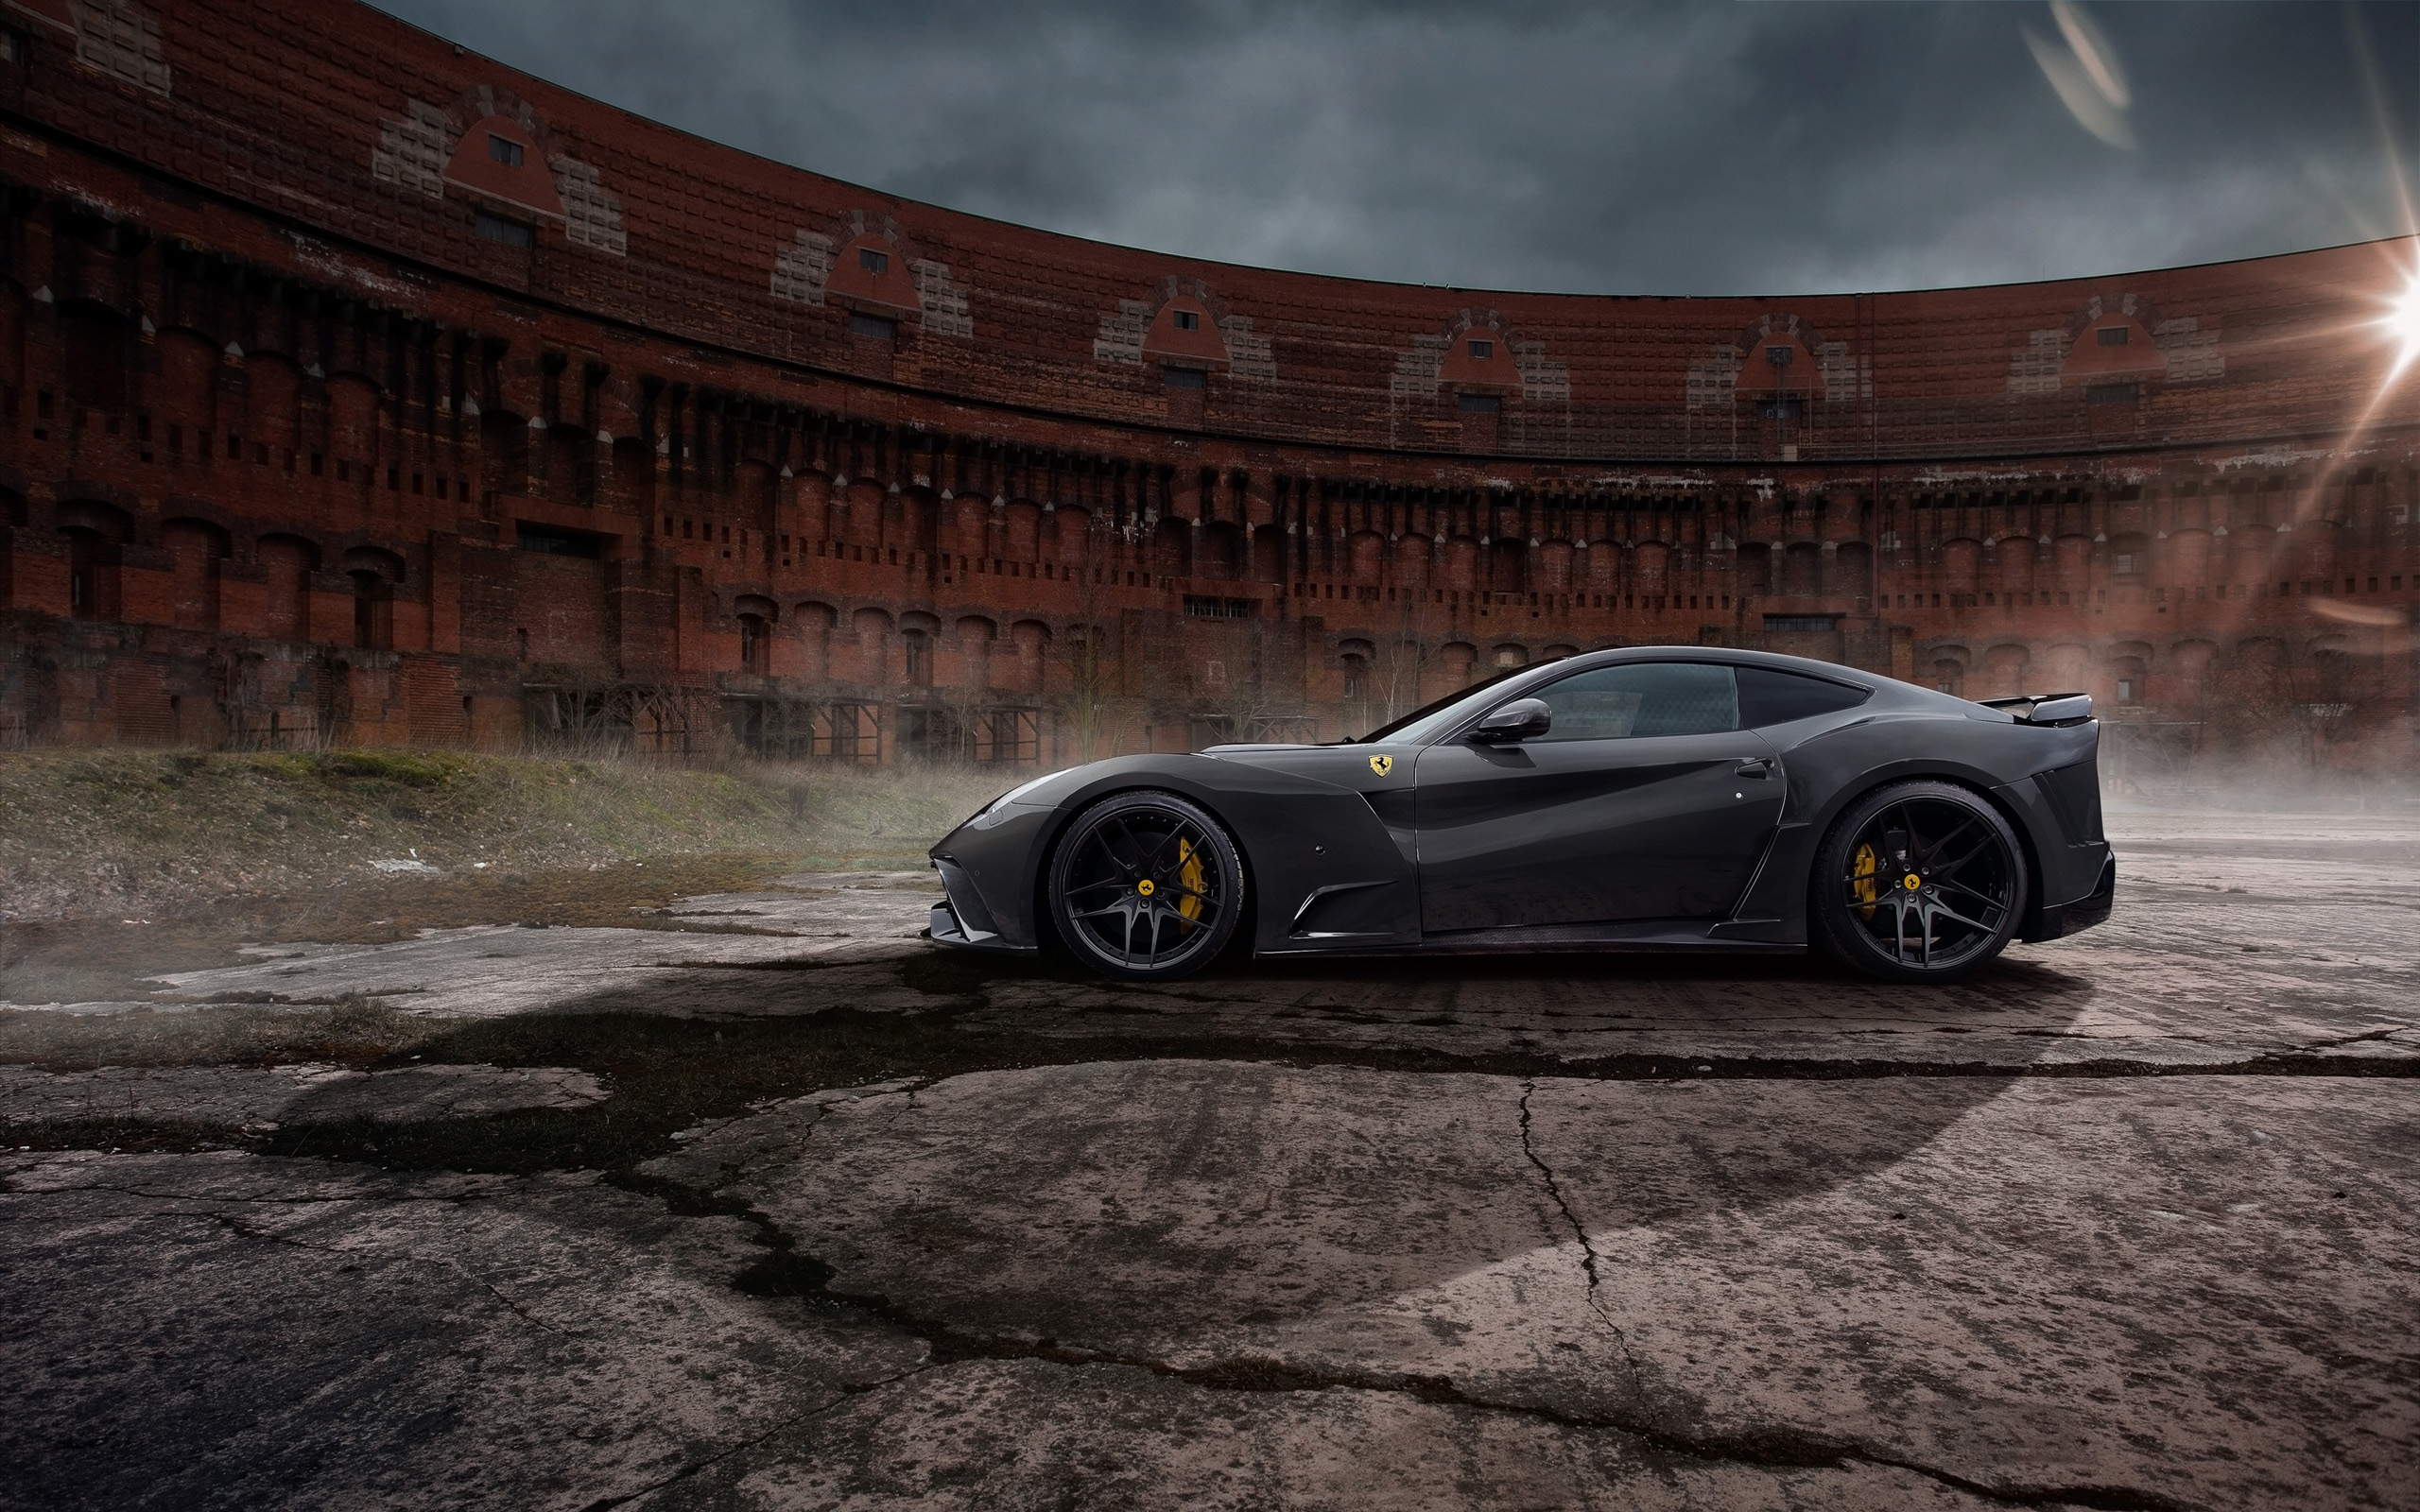 2016 Novitec Rosso Ferrari F12 N Largo S Wallpaper | HD Car Wallpapers